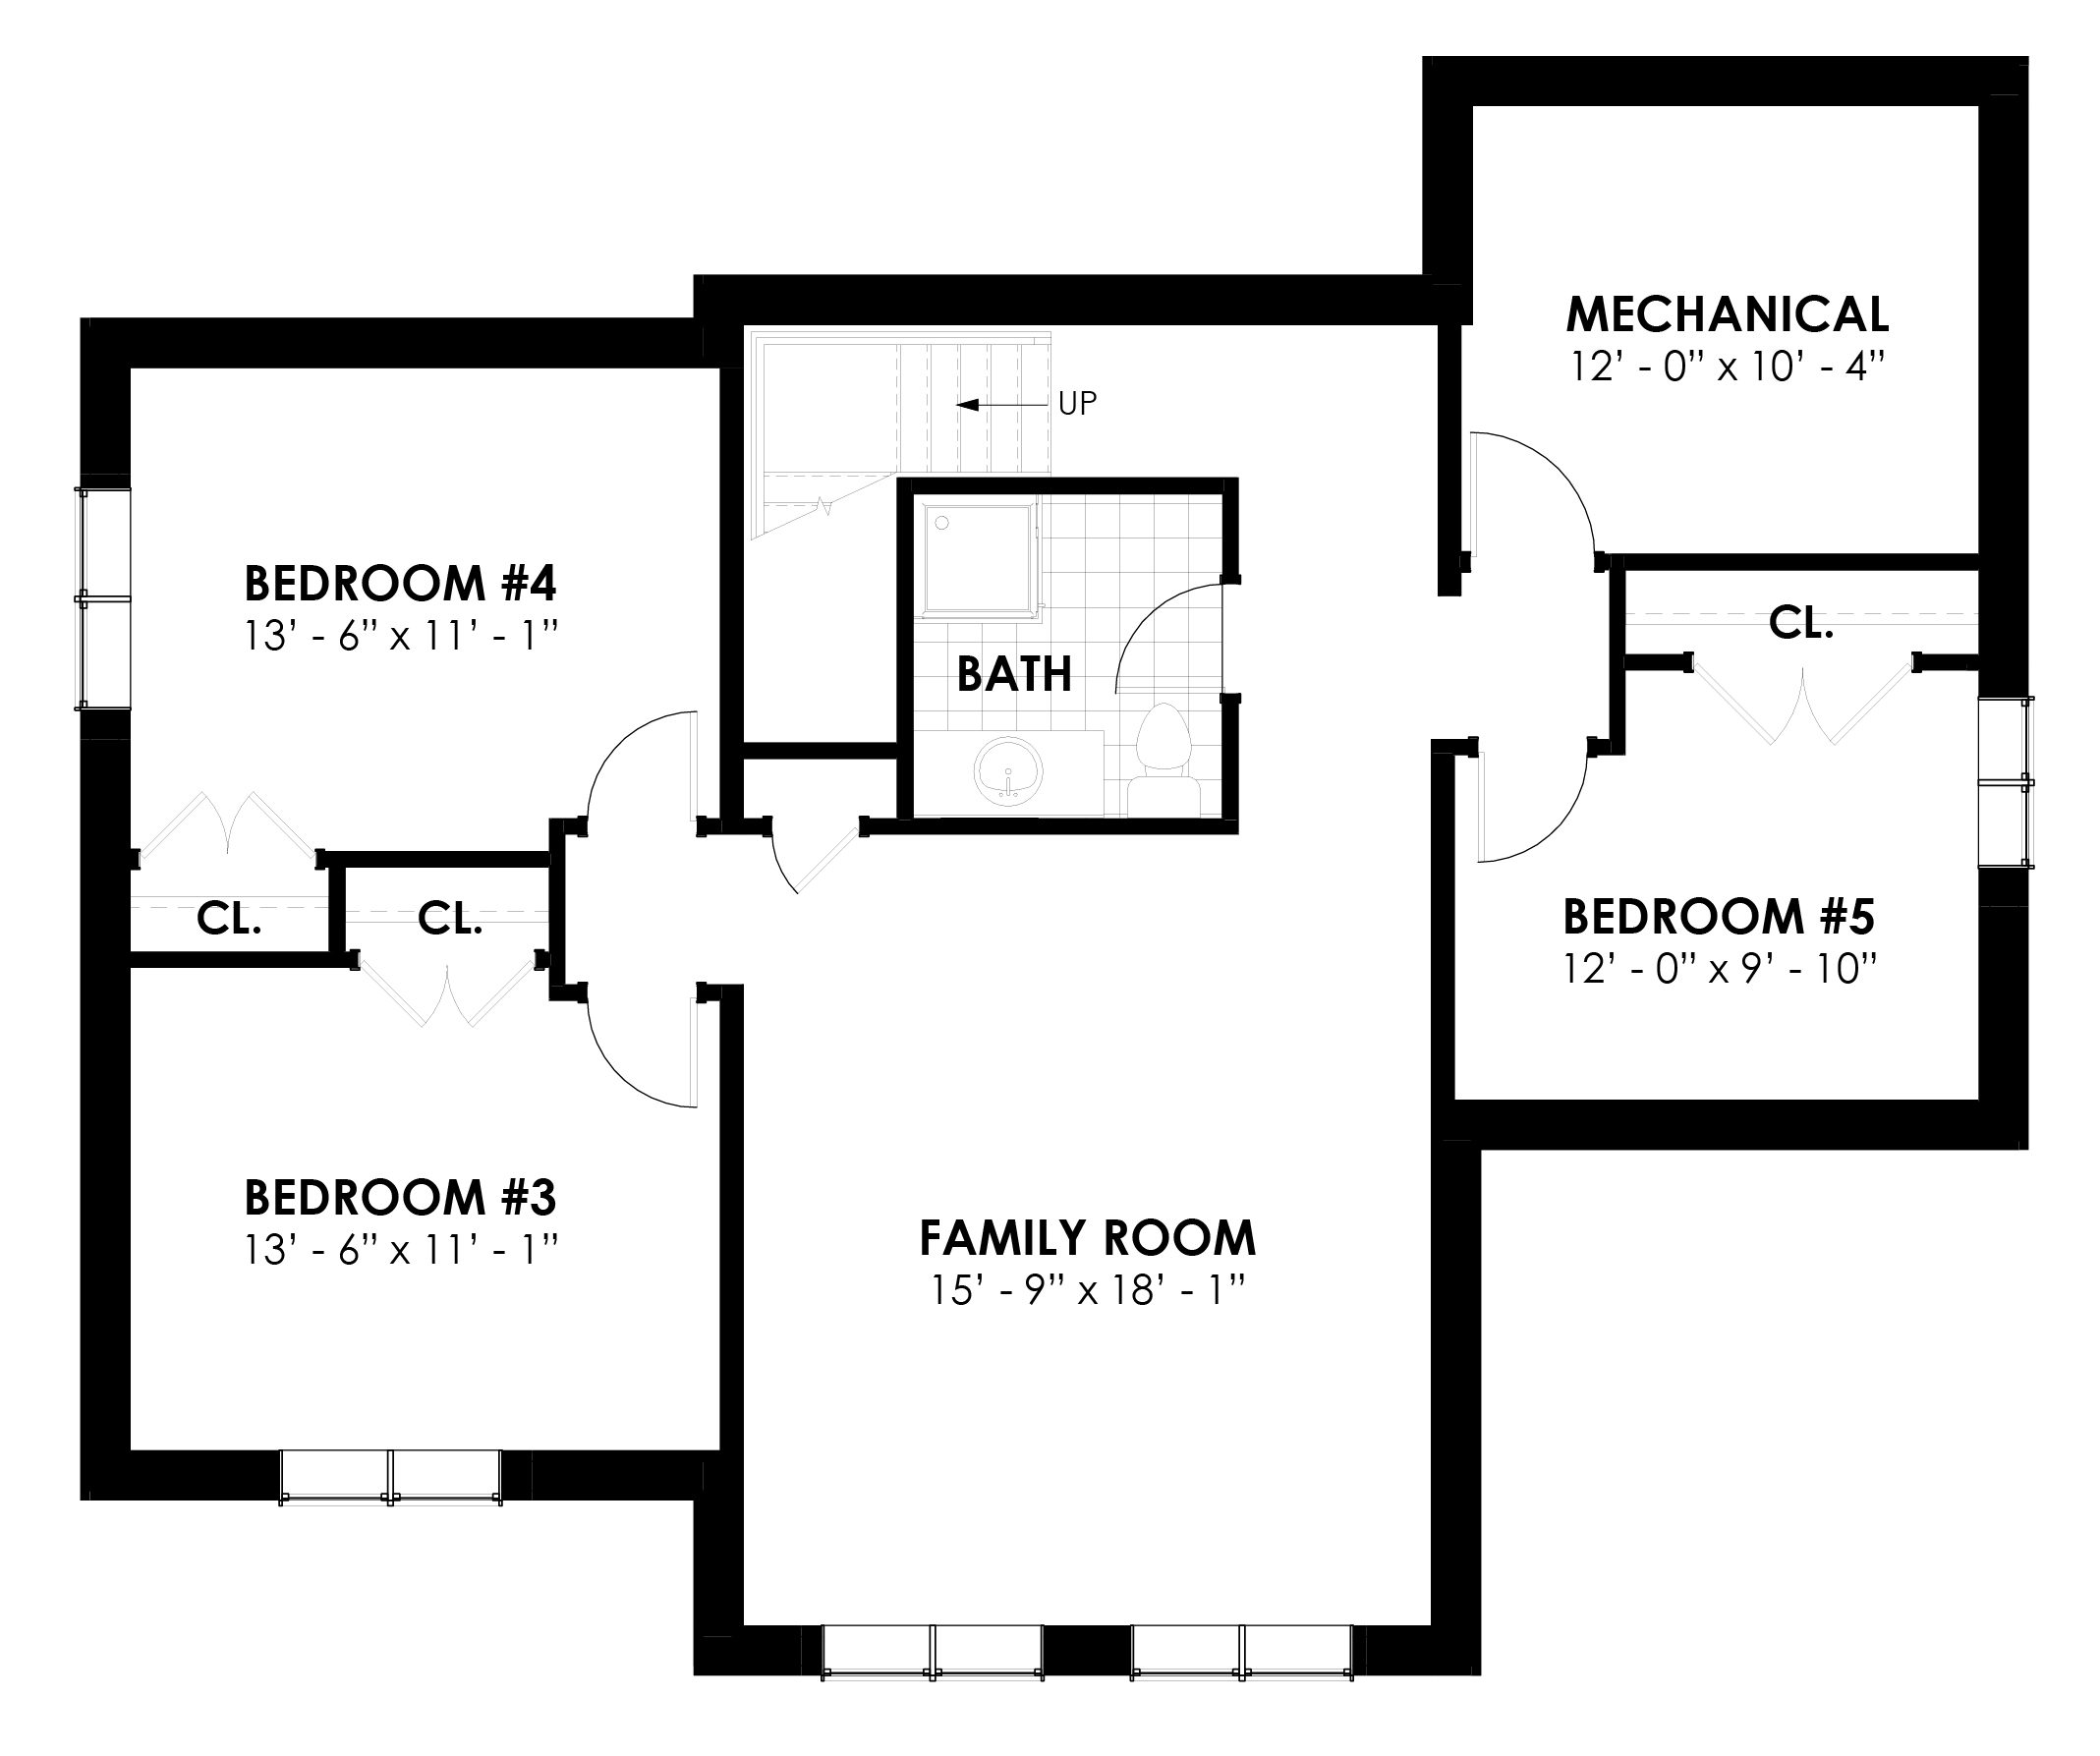 Normerica Timber Frames, House Plan, The Killarney 2134, Basement Layout